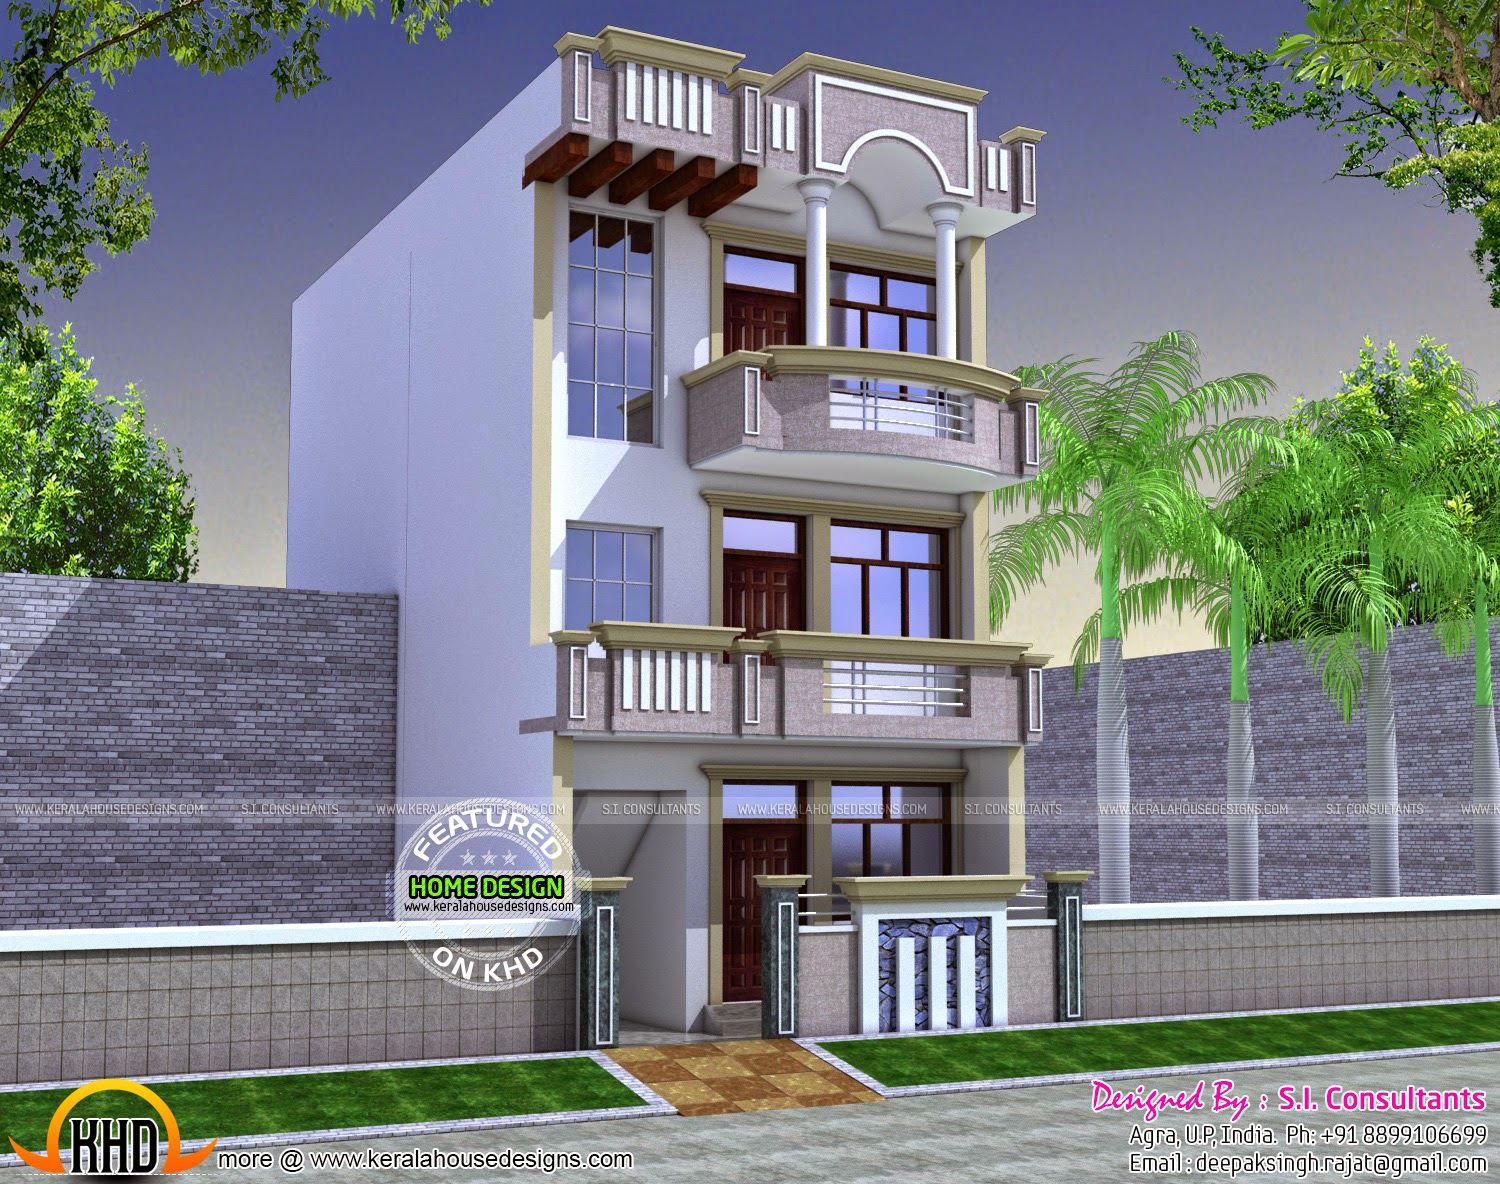 Bangalore House Design Keralahousedesigns